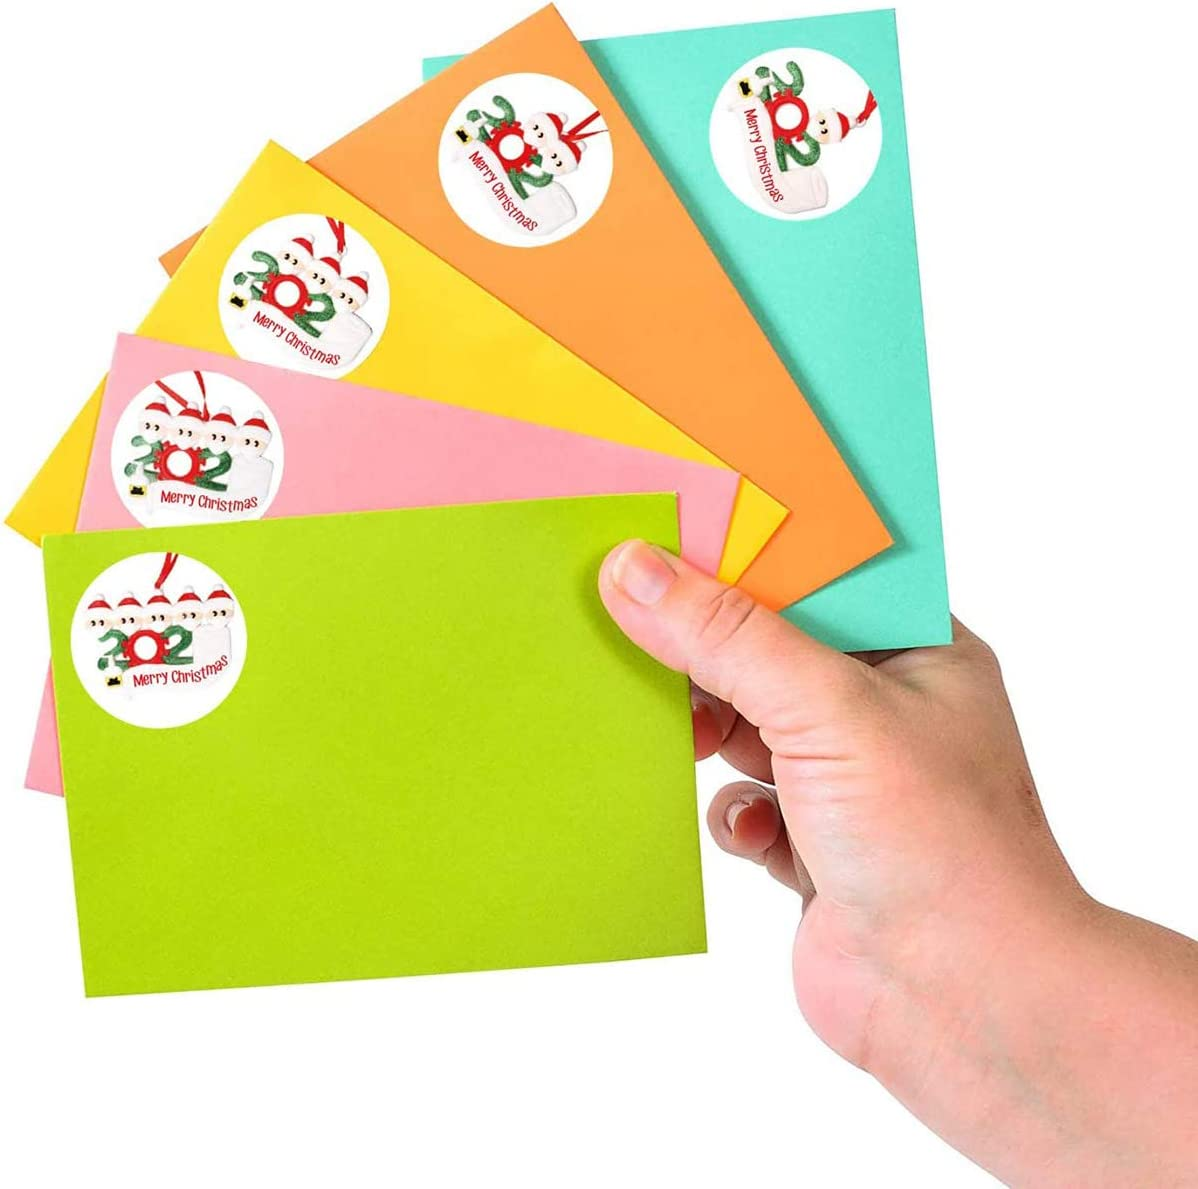 2020 Christmas Quarantine Survivor Round Label Stickers Envelope Stickers Seals for Cards Present Envelopes Boxes Bag Sealing Decorations 1.5 Inch Merry Christmas Stickers